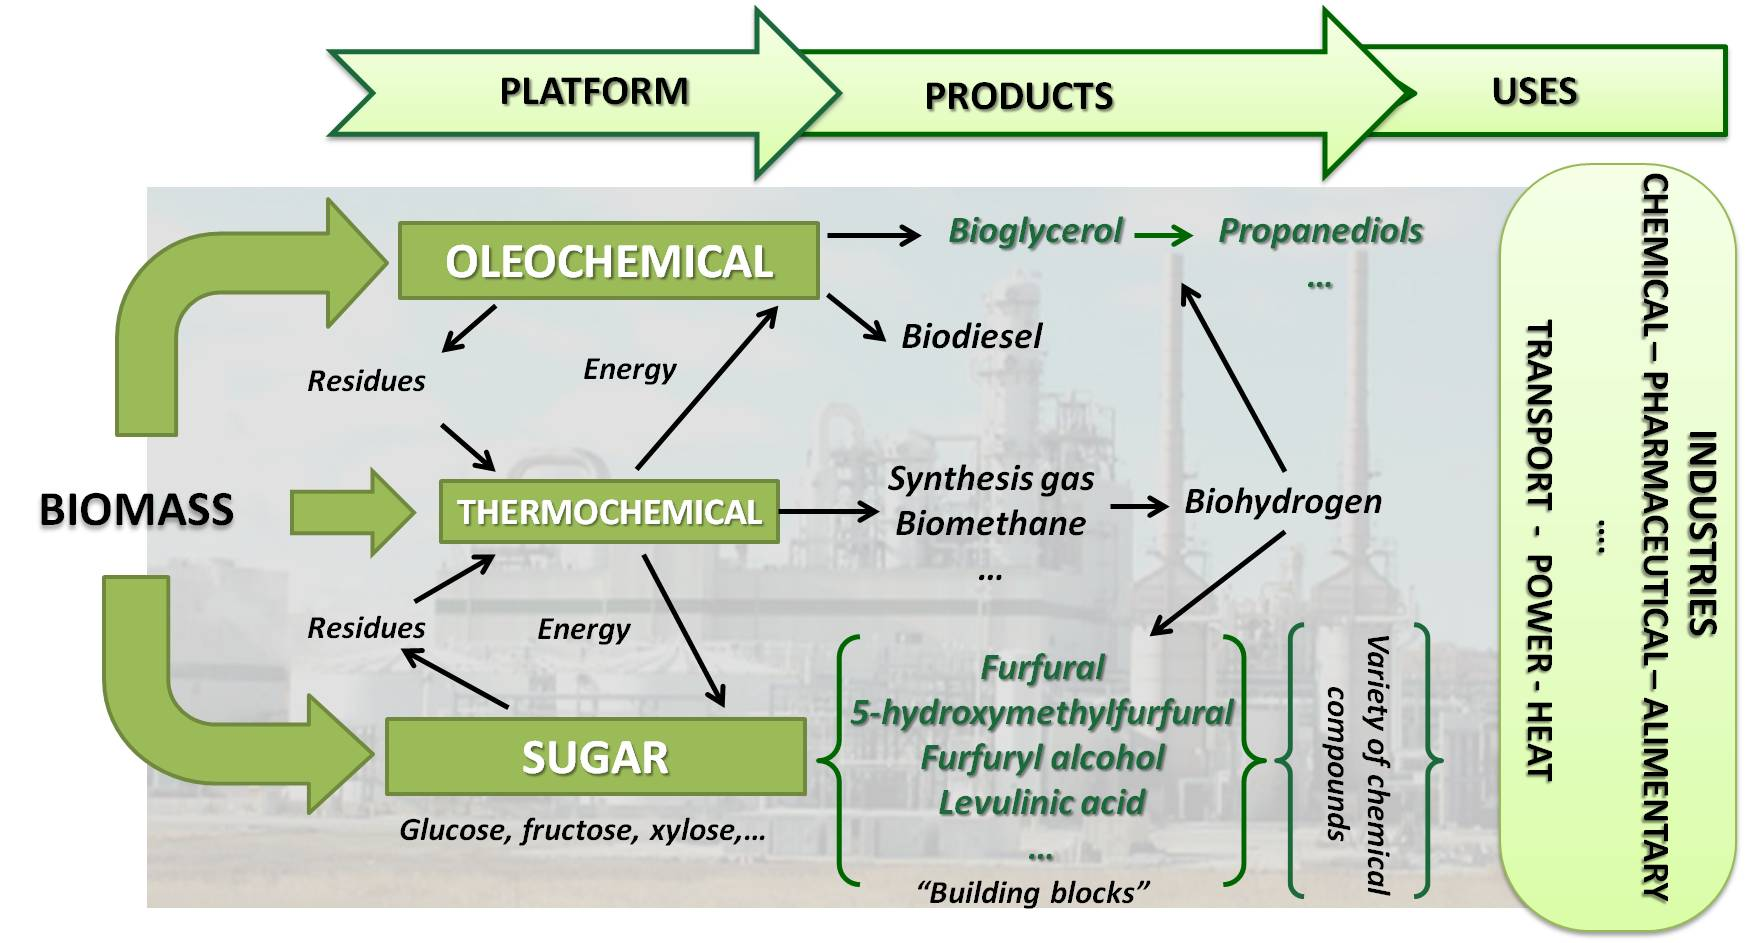 thesis food additives the processes that subsequently transform these intermediates to the biofuels and chemical products of higher added value food additives drugs polymers